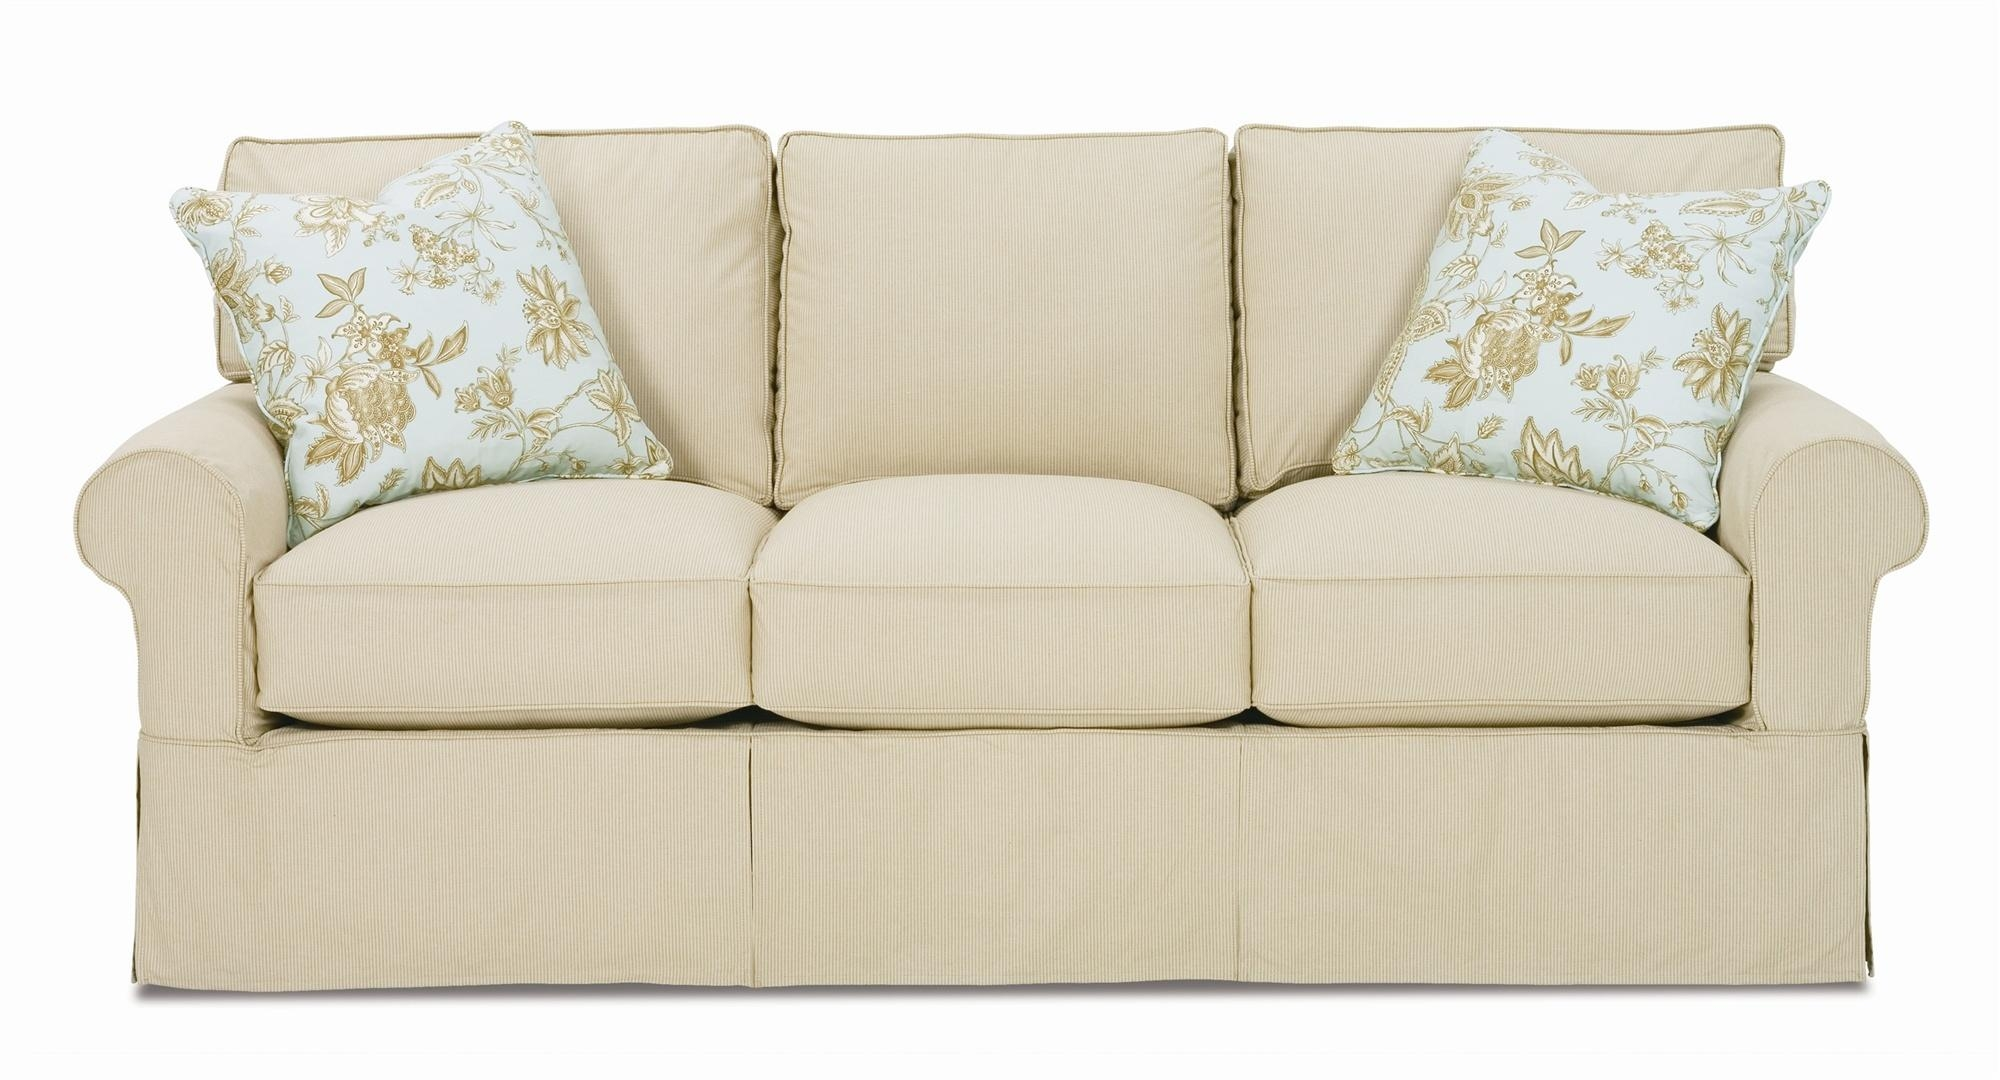 Furniture: 2 Piece Sofa Slipcover | Shabby Chic Sofa Slipcovers Regarding Shabby Chic Sofa Slipcovers (View 8 of 20)